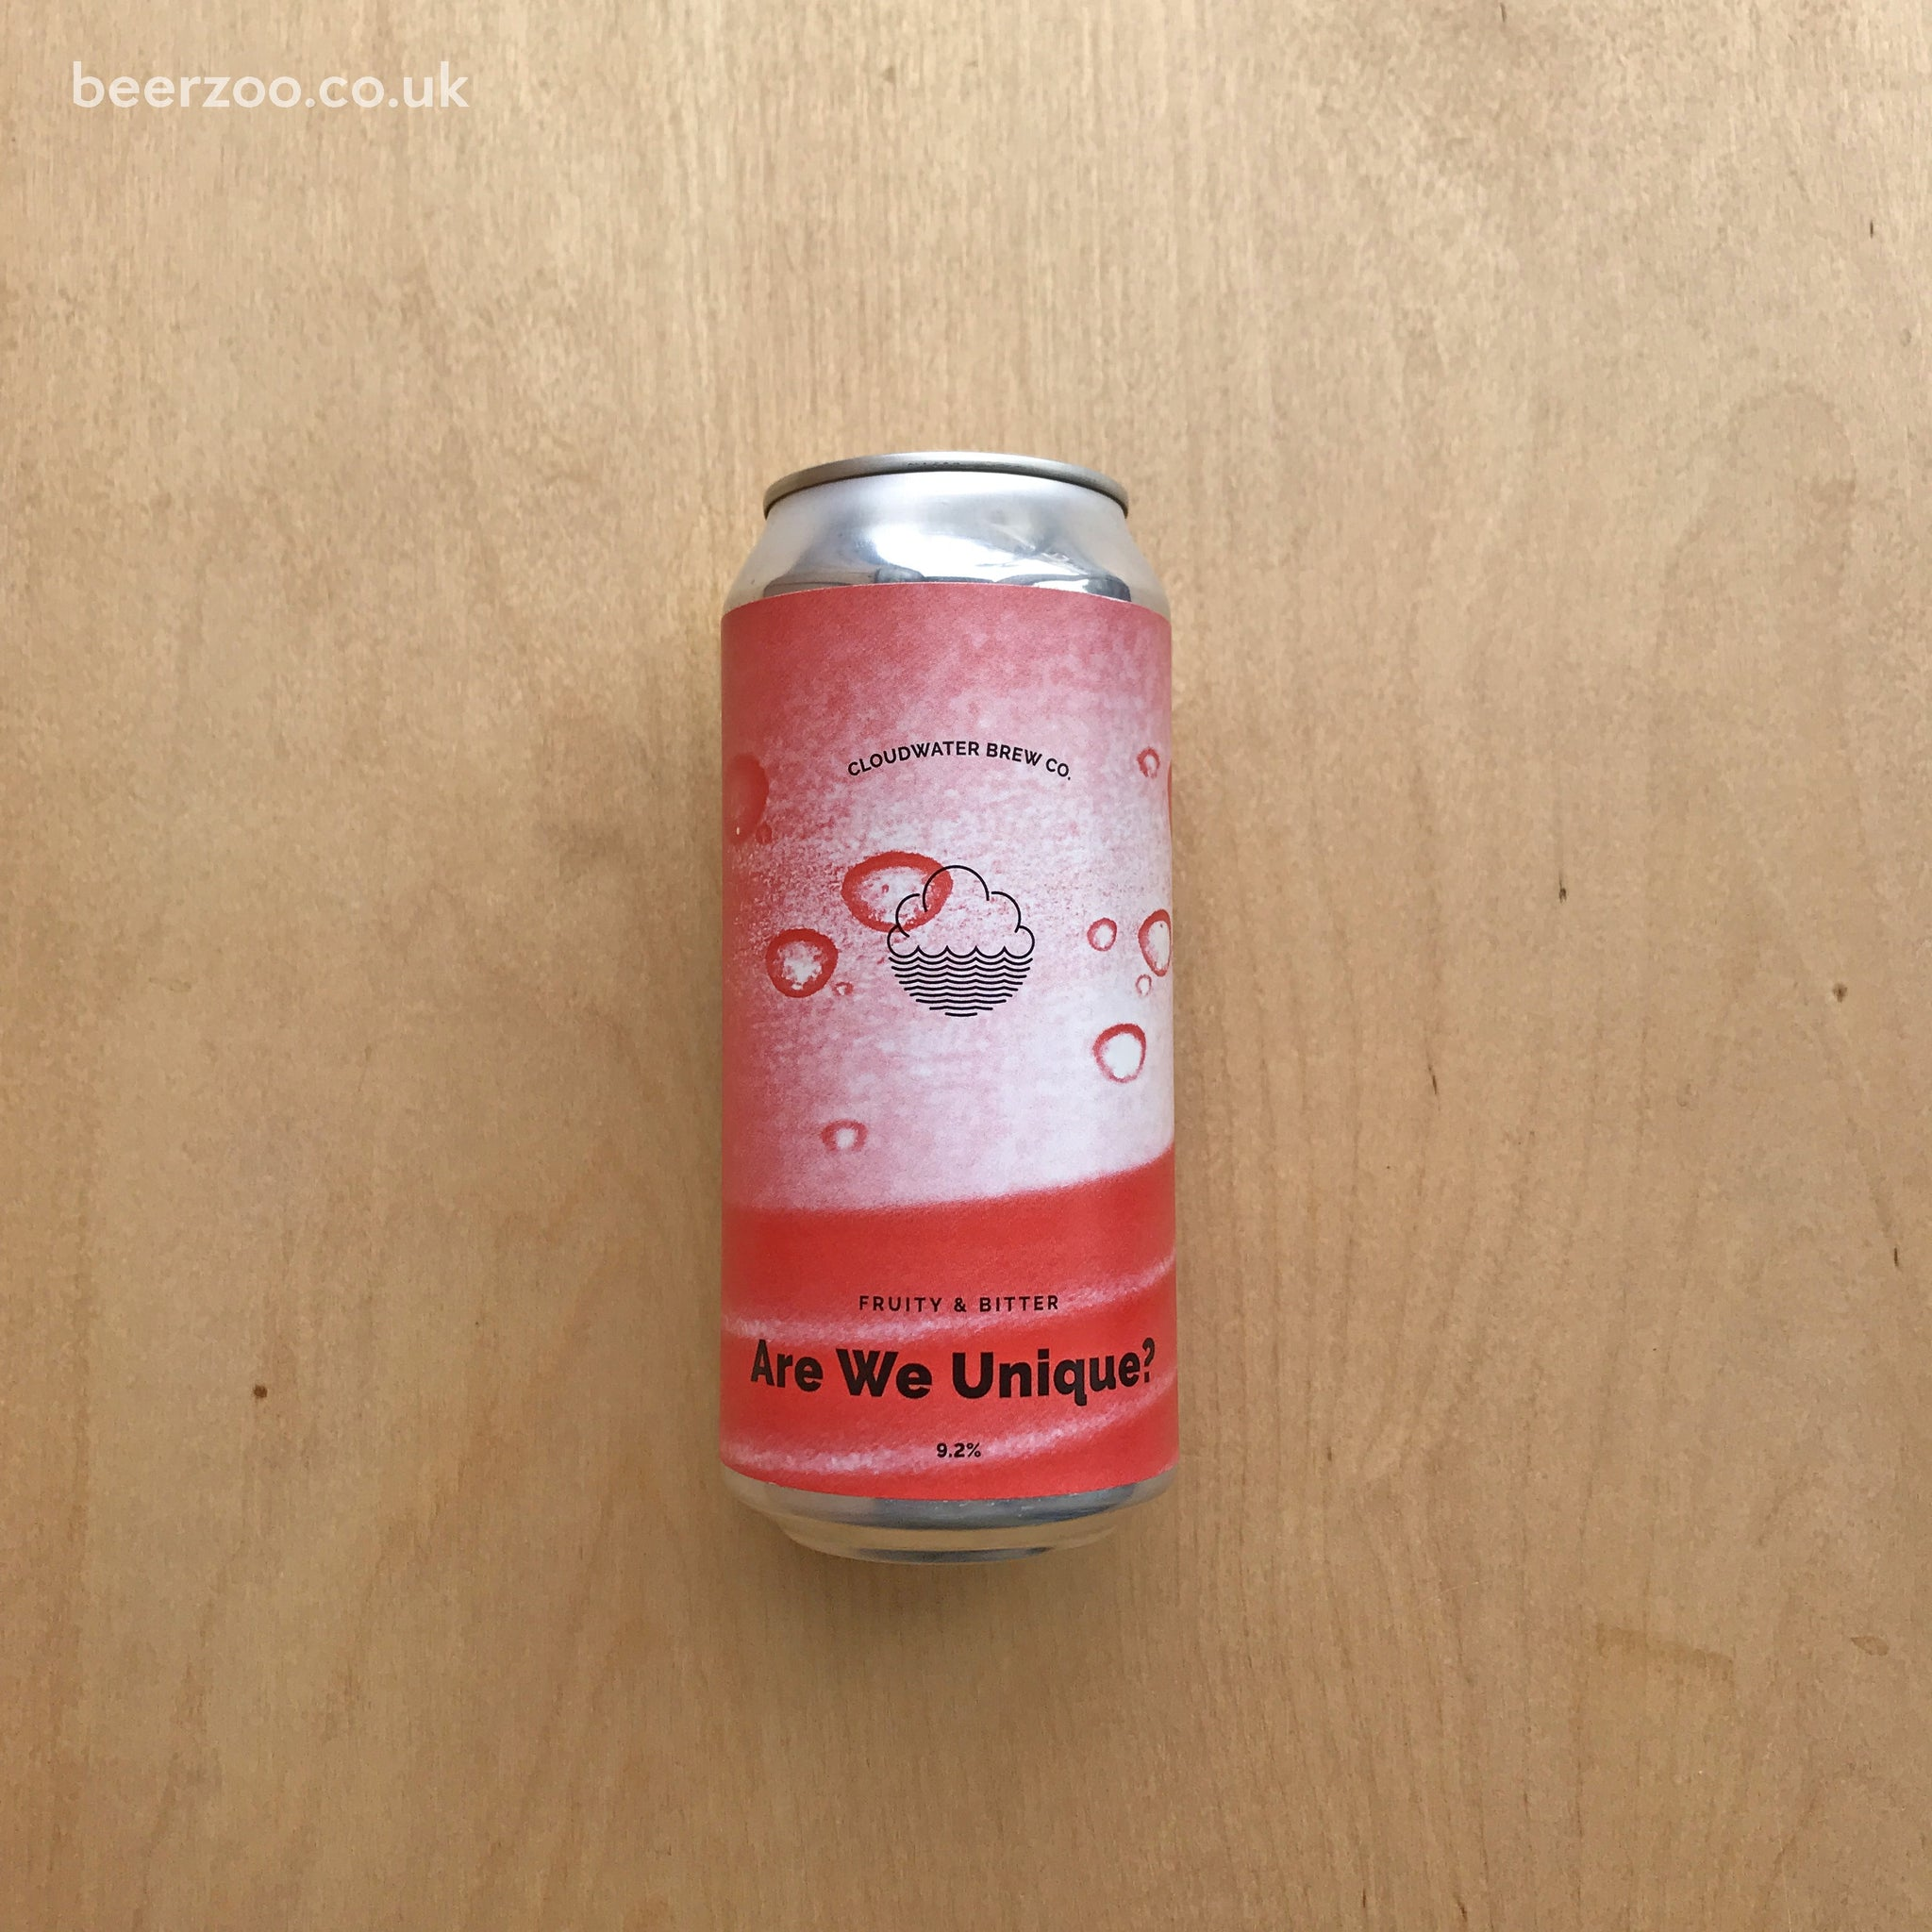 Cloudwater - Are We Unique? 9.2% (440ml)